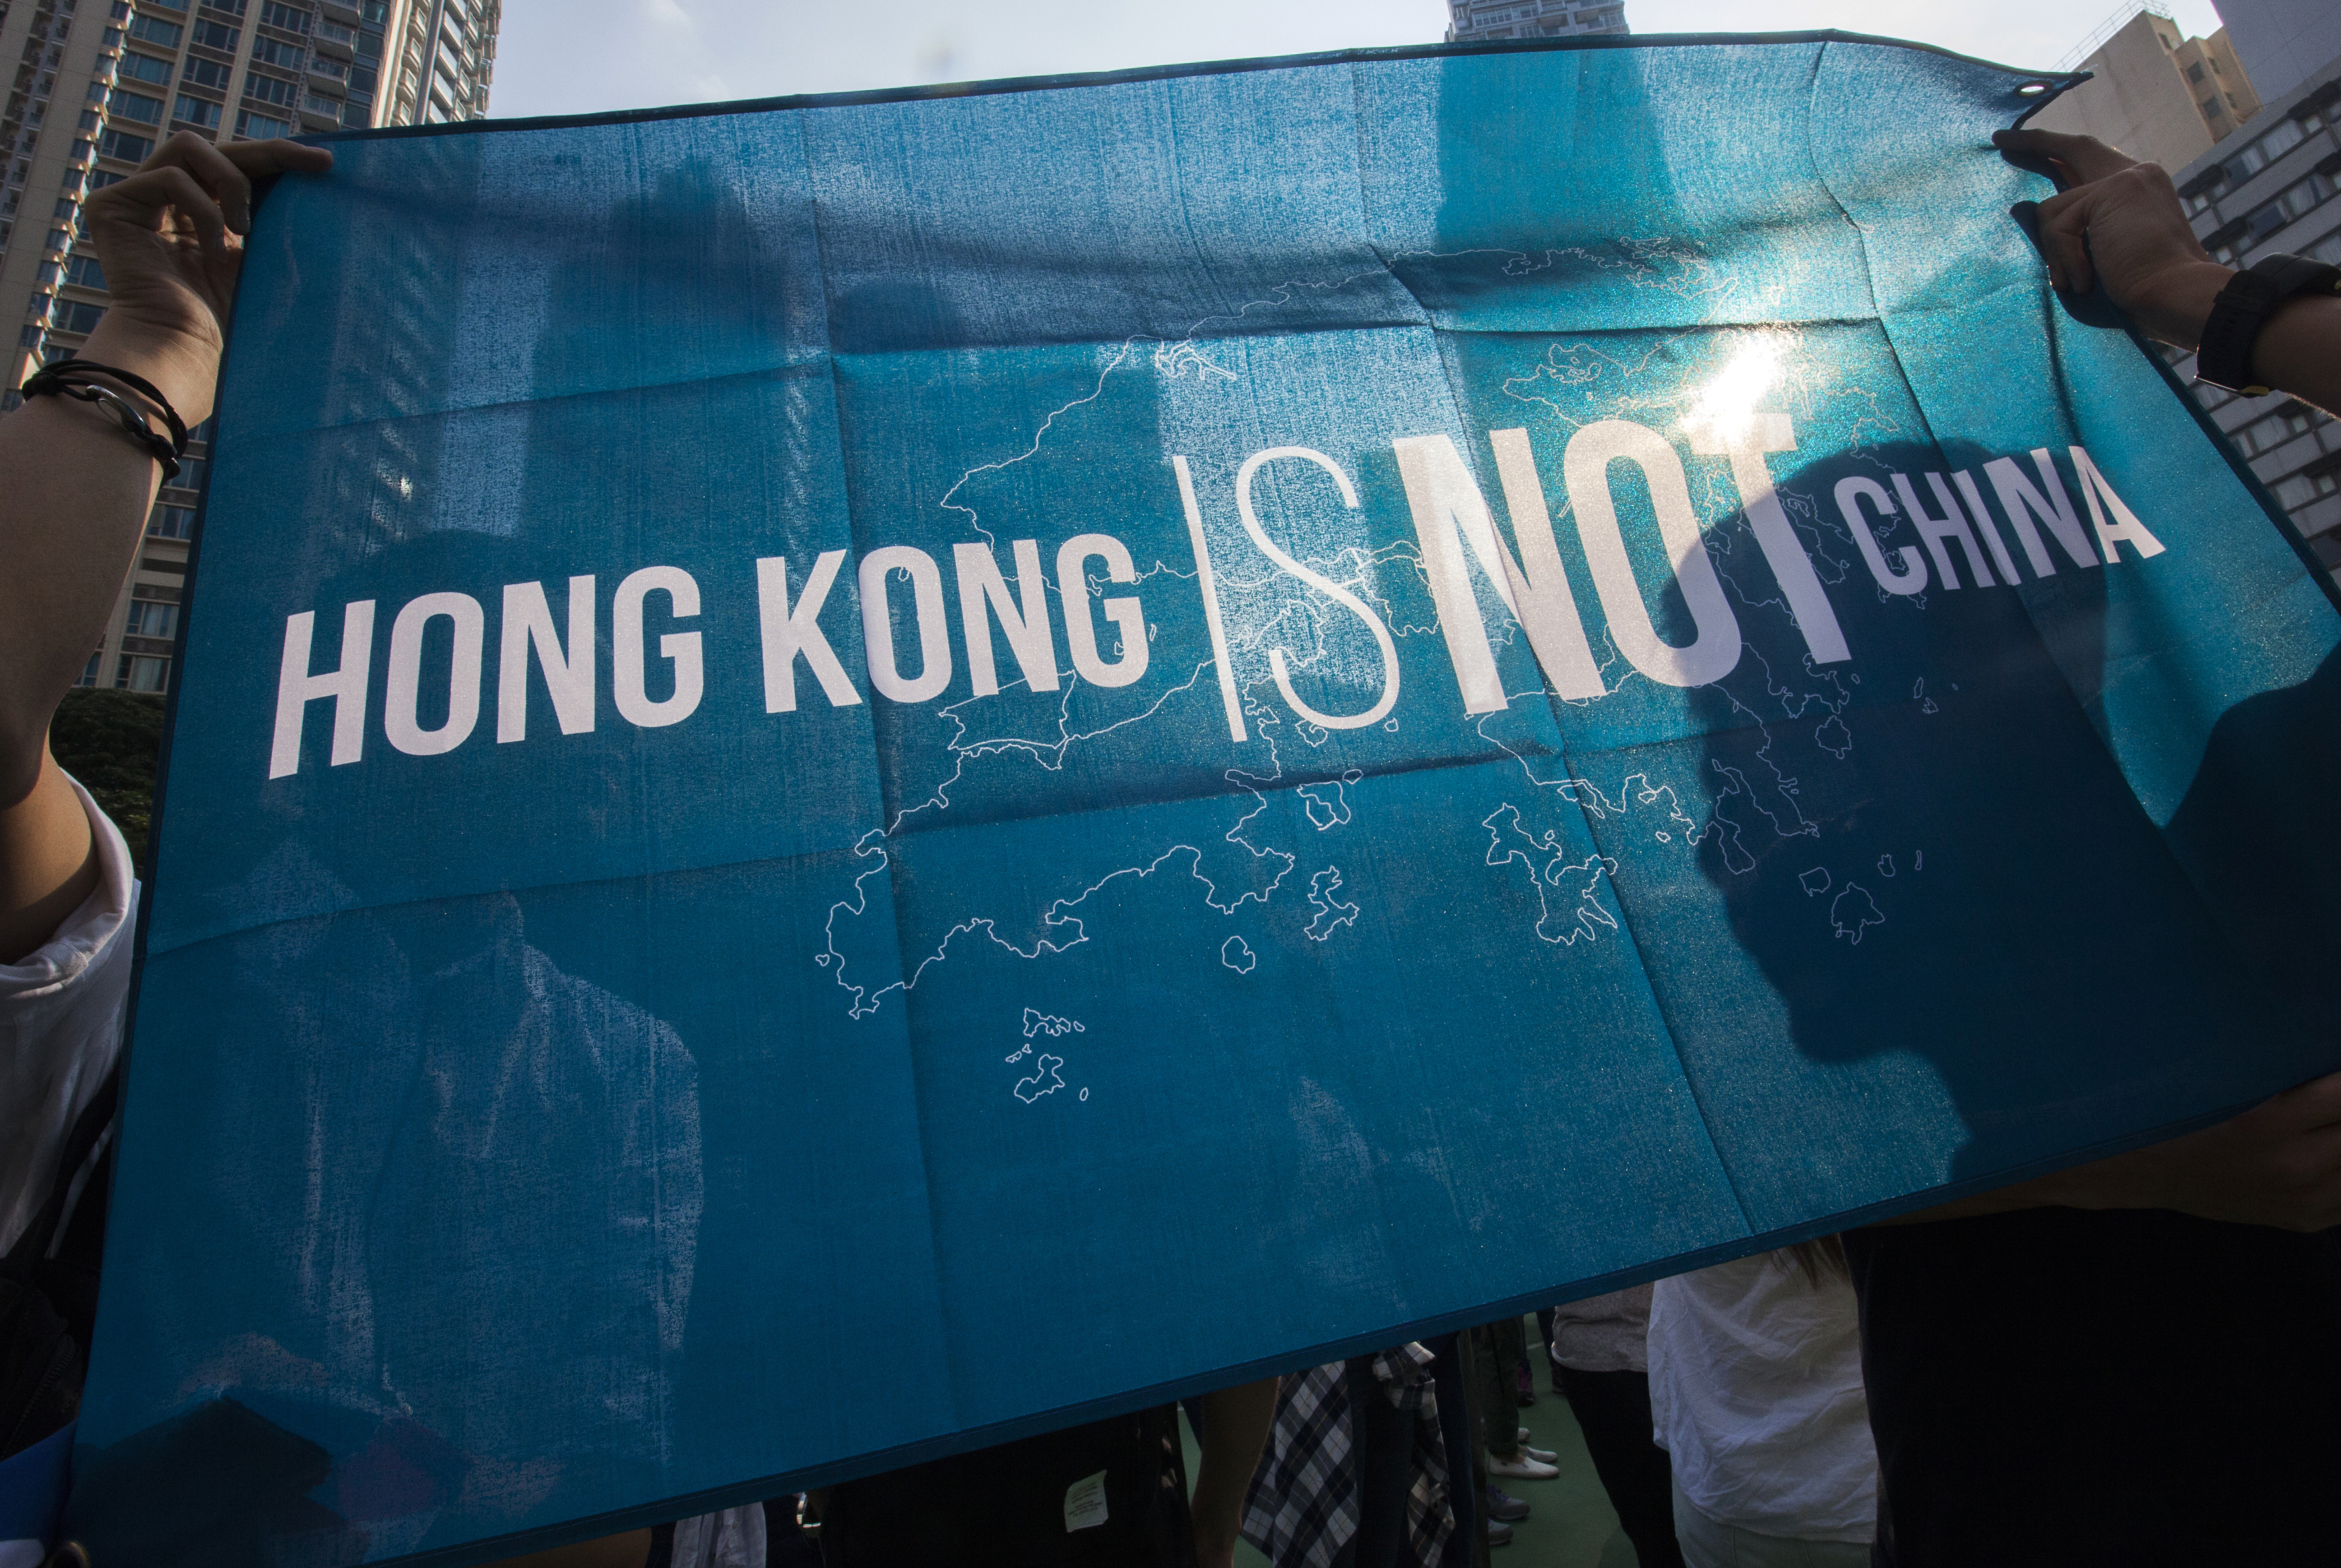 A man holds a 'Hong Kong is Not China' flag during a protest against the Legislative Council oath-taking interpretation of the city's Basic Law, or mini-constitution, by the Chinese authorities in Beijing, in Hong Kong, China, 06 November 2016. During their swearing-in ceremony in October 2016, councillors-elect Leung and Yau altered their oaths in a provocative move against mainland China and displayed pro-independent Hong Kong flags. The Standing Committee of the National People's Congress (NPC) plans to discuss to overturn the oathtaking and hence bar the elected councillors, which has sparked protests in Hong Kong. EPA/ALEX HOFFORD